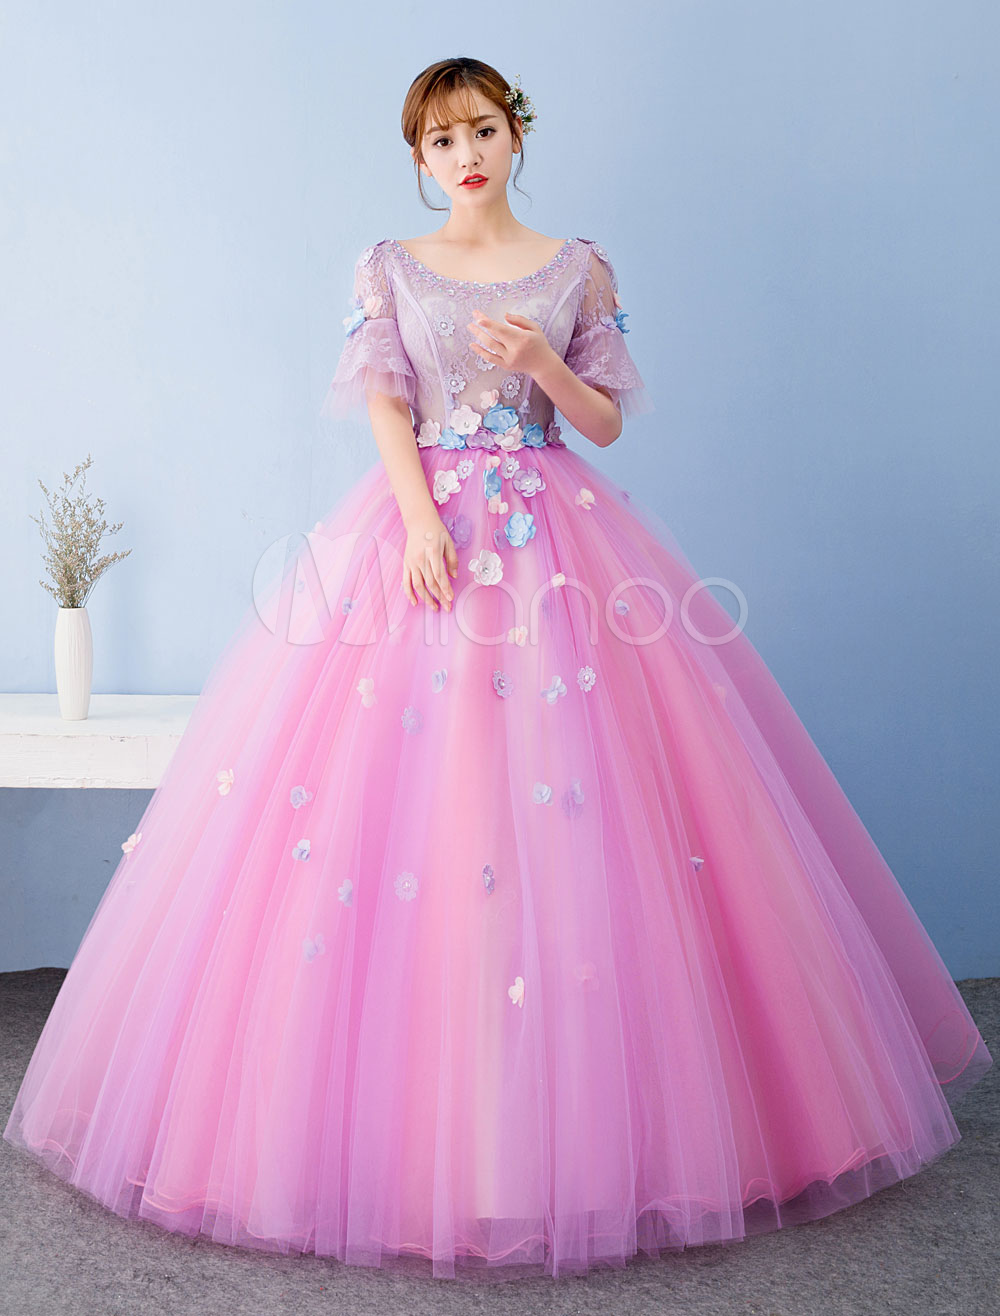 Fuchsia Pink Quinceanera Dress Ball Gown Tulle Pageant Dress Keyhole Back Lace Beading Flower Short Sleeve Floor Length Prom Dress